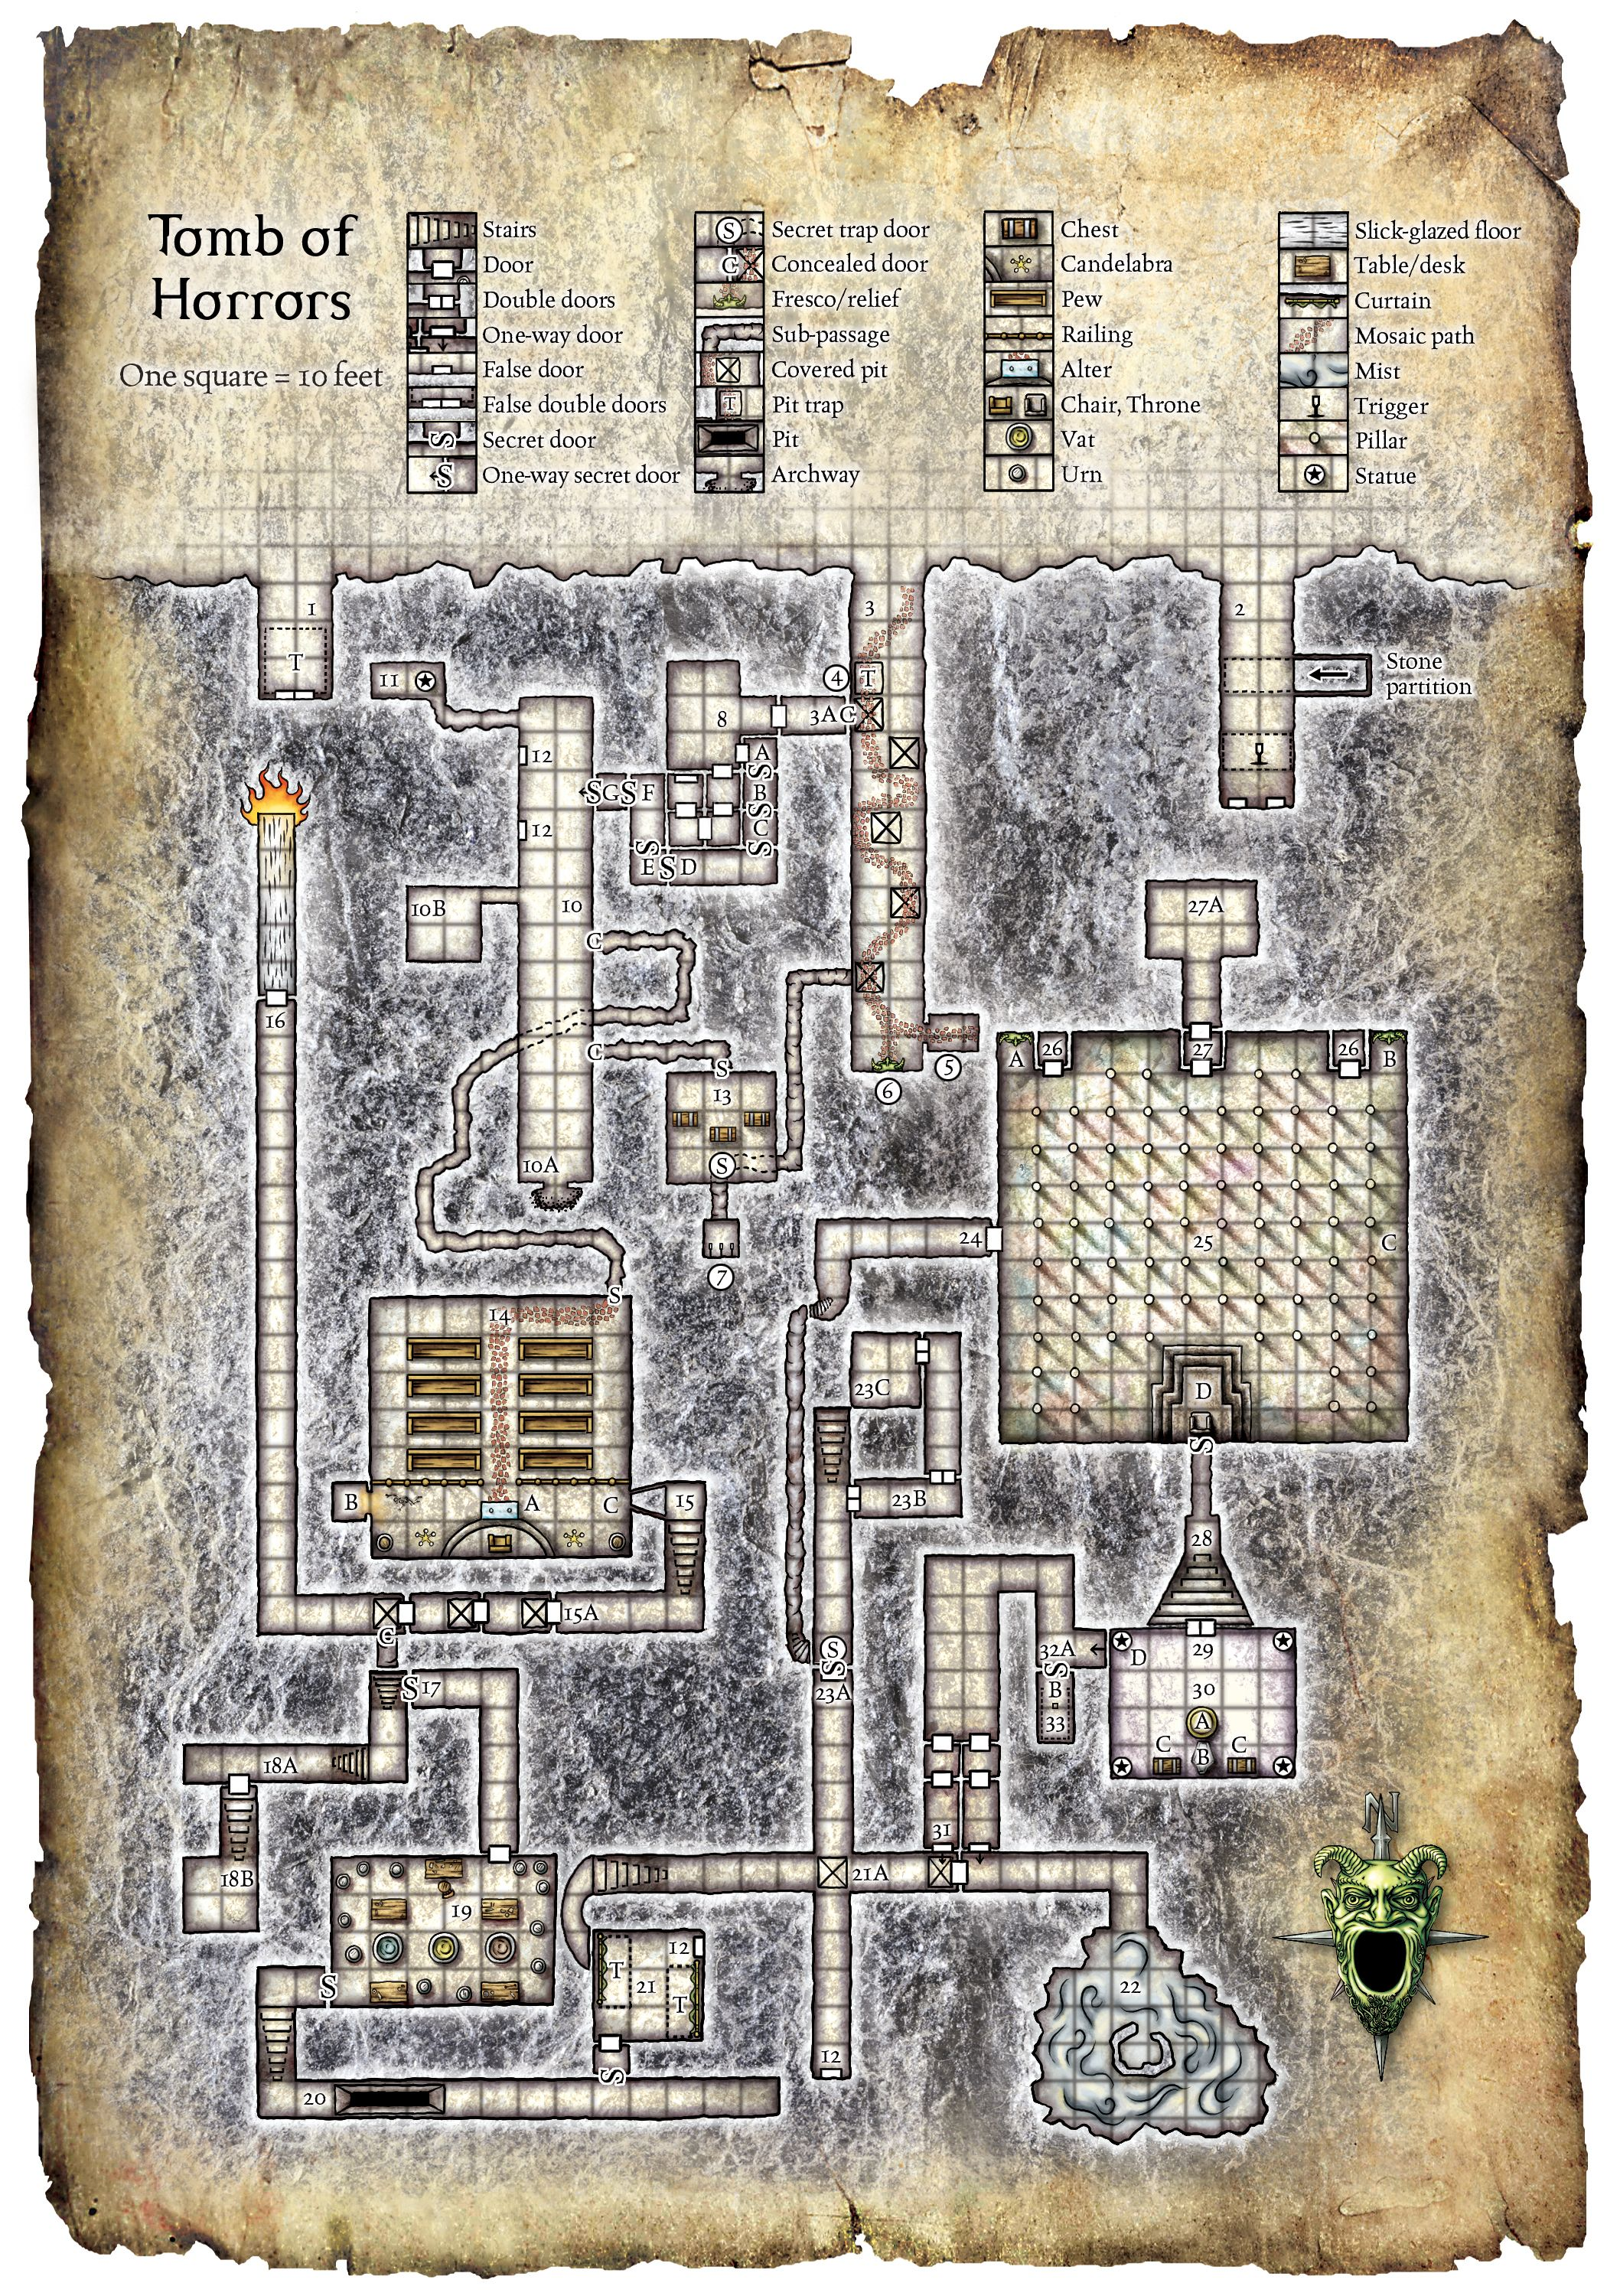 Tomb Of Horrors Map Tomb Of Horrors | D&D Maps | Ready Player One, Dungeon maps, Map